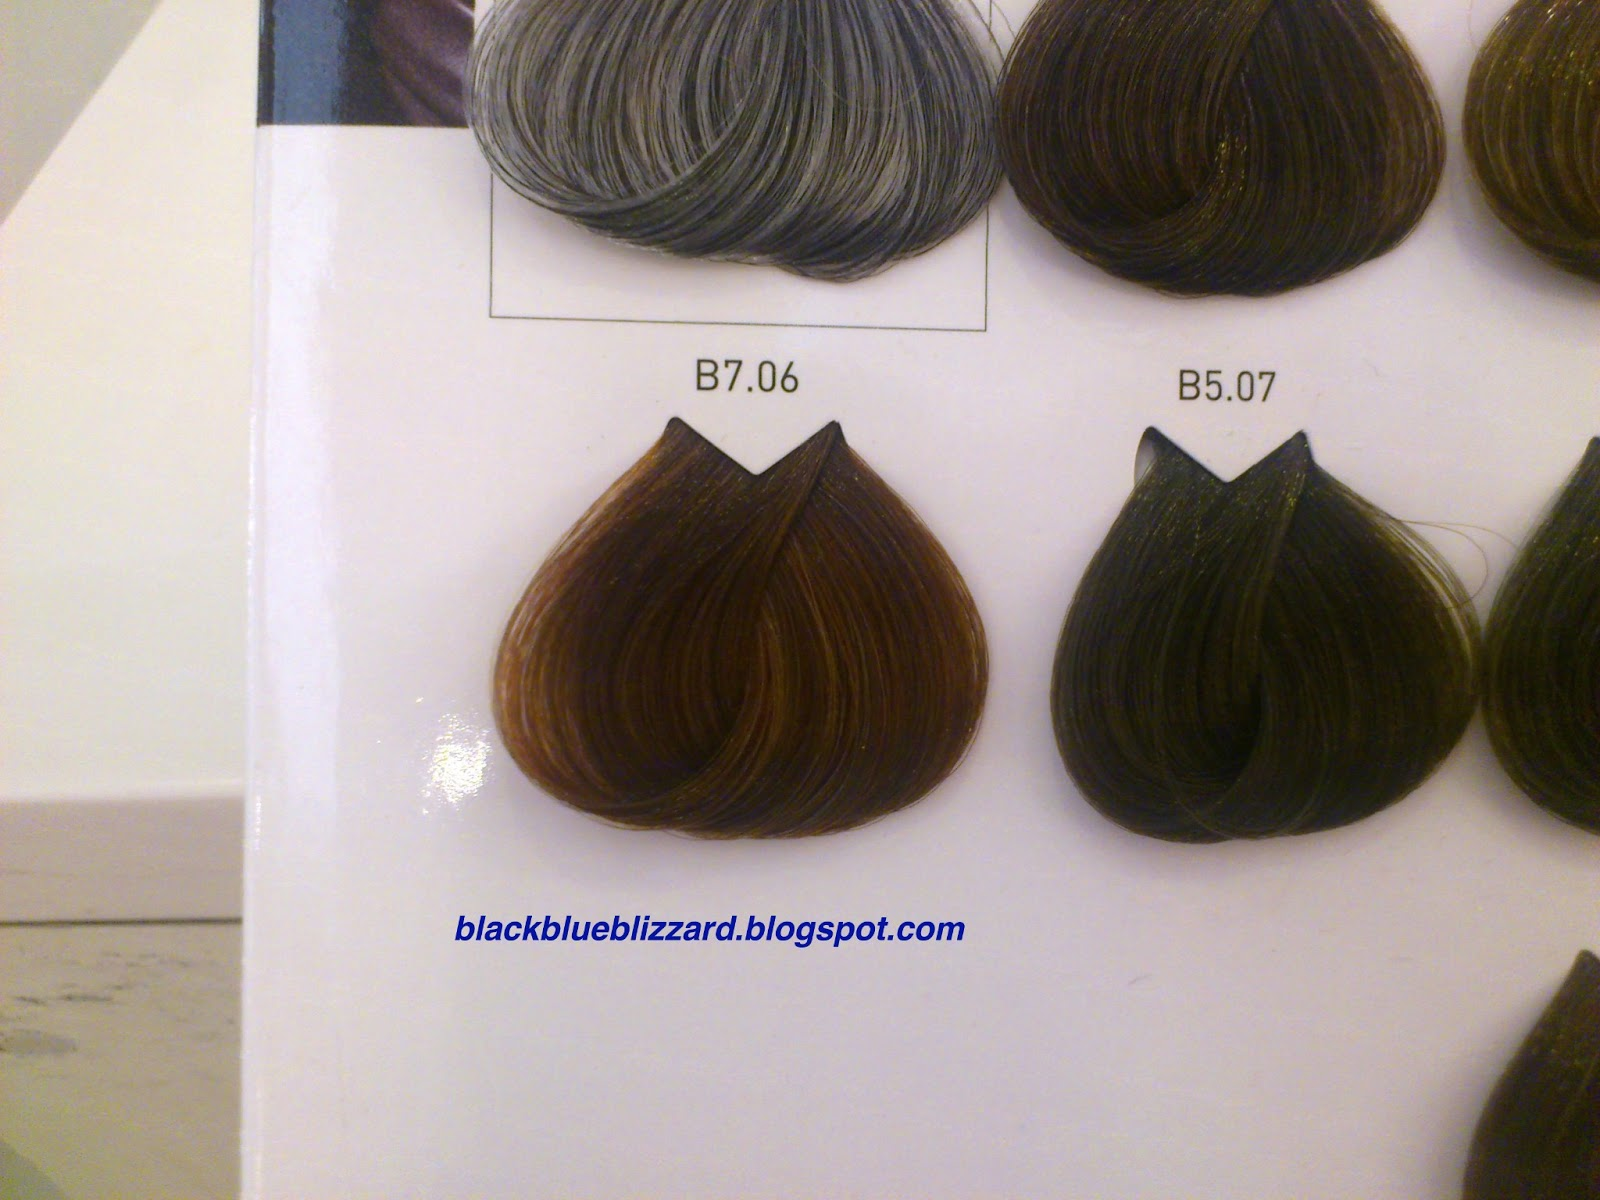 JOHNNY ANDREAN SALON SWEET CHOCOLATE HAIR COLORING